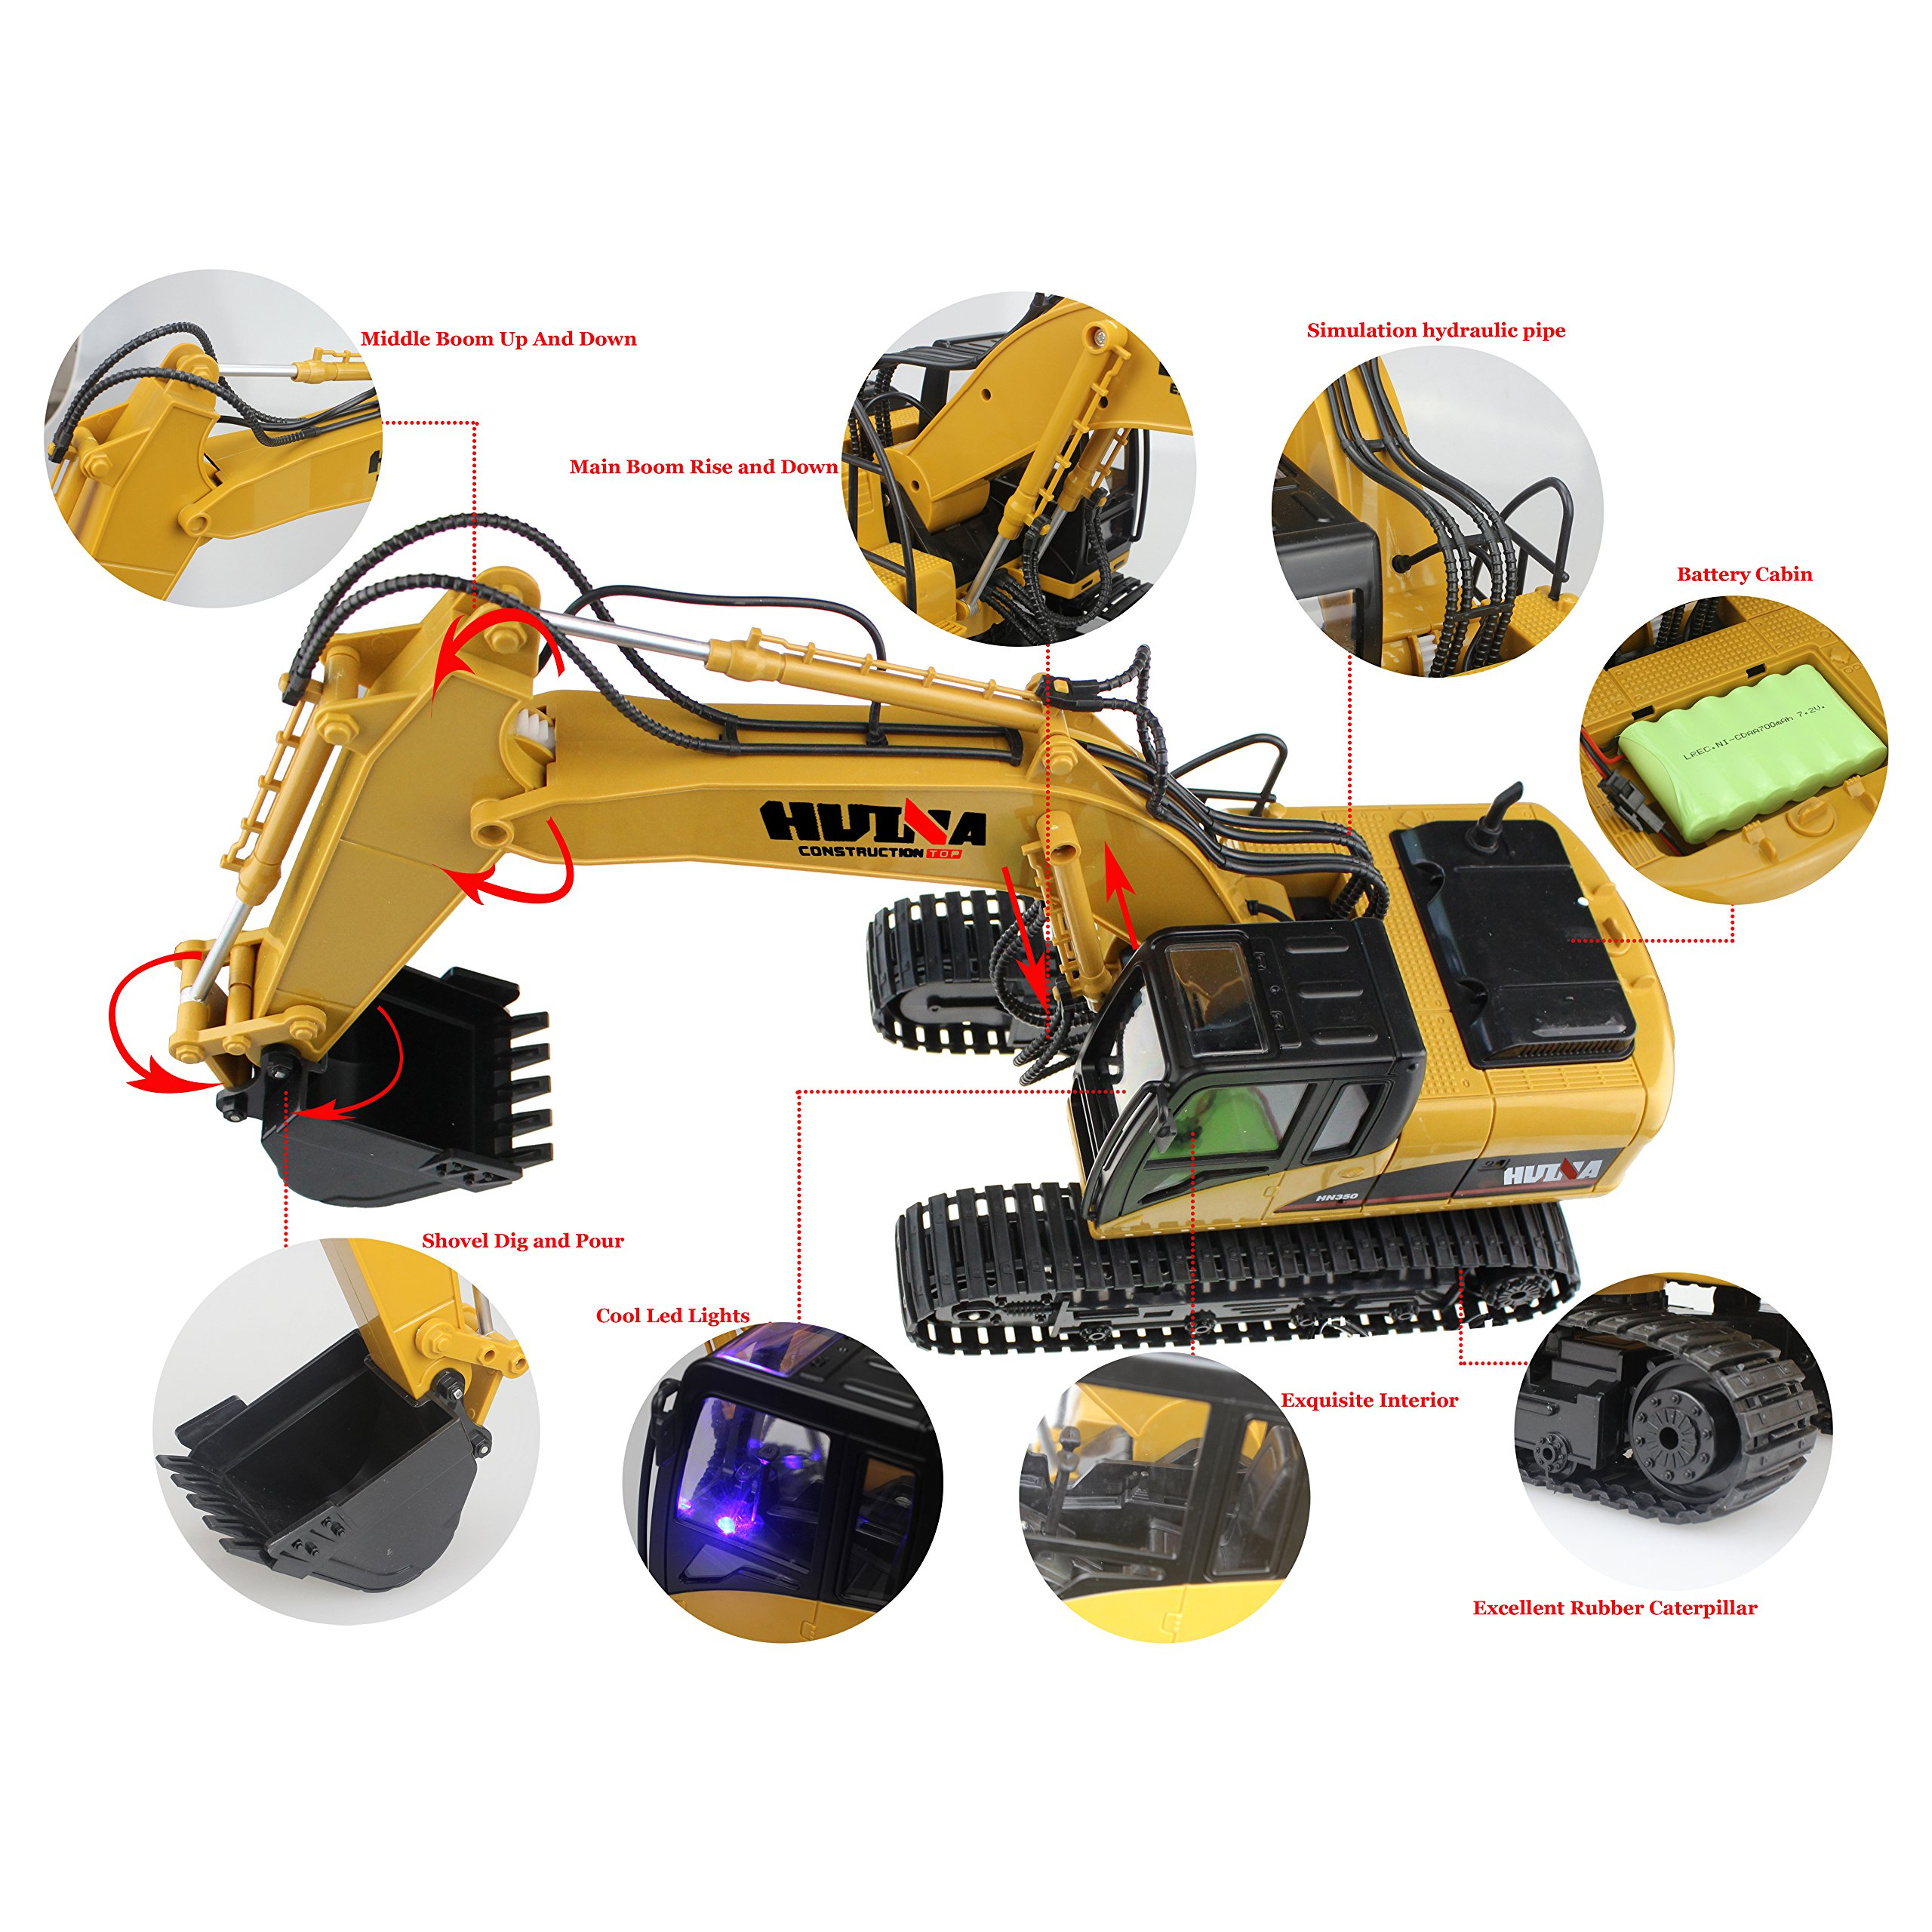 RC Truck Remote Control Excavator Crawler Tractor 15 Channel 2.4G Construction Vehicle Digger Electronics Hobby Toys with Simulation Sound and Flashing Lights by fisca (Image #4)